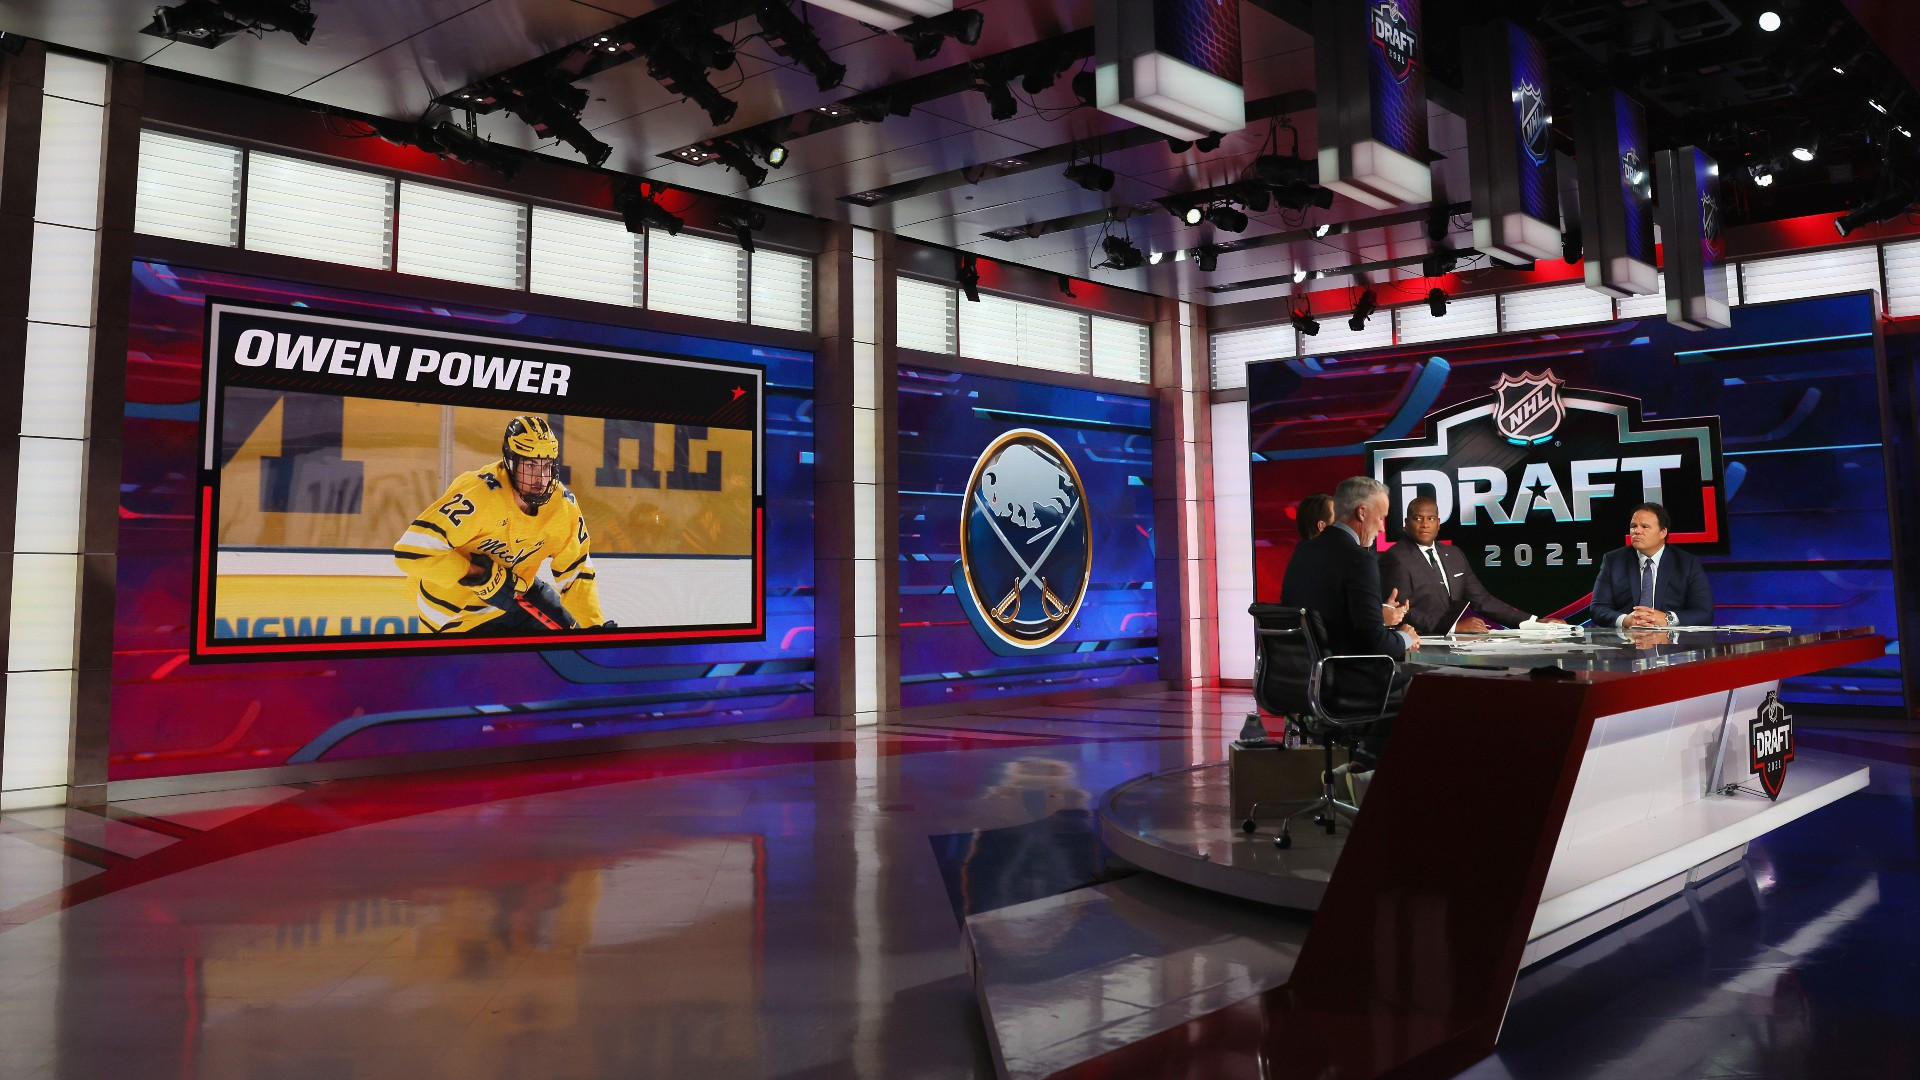 NHL Draft grades 2021: Full results, analysis for every first-round pick - sporting news